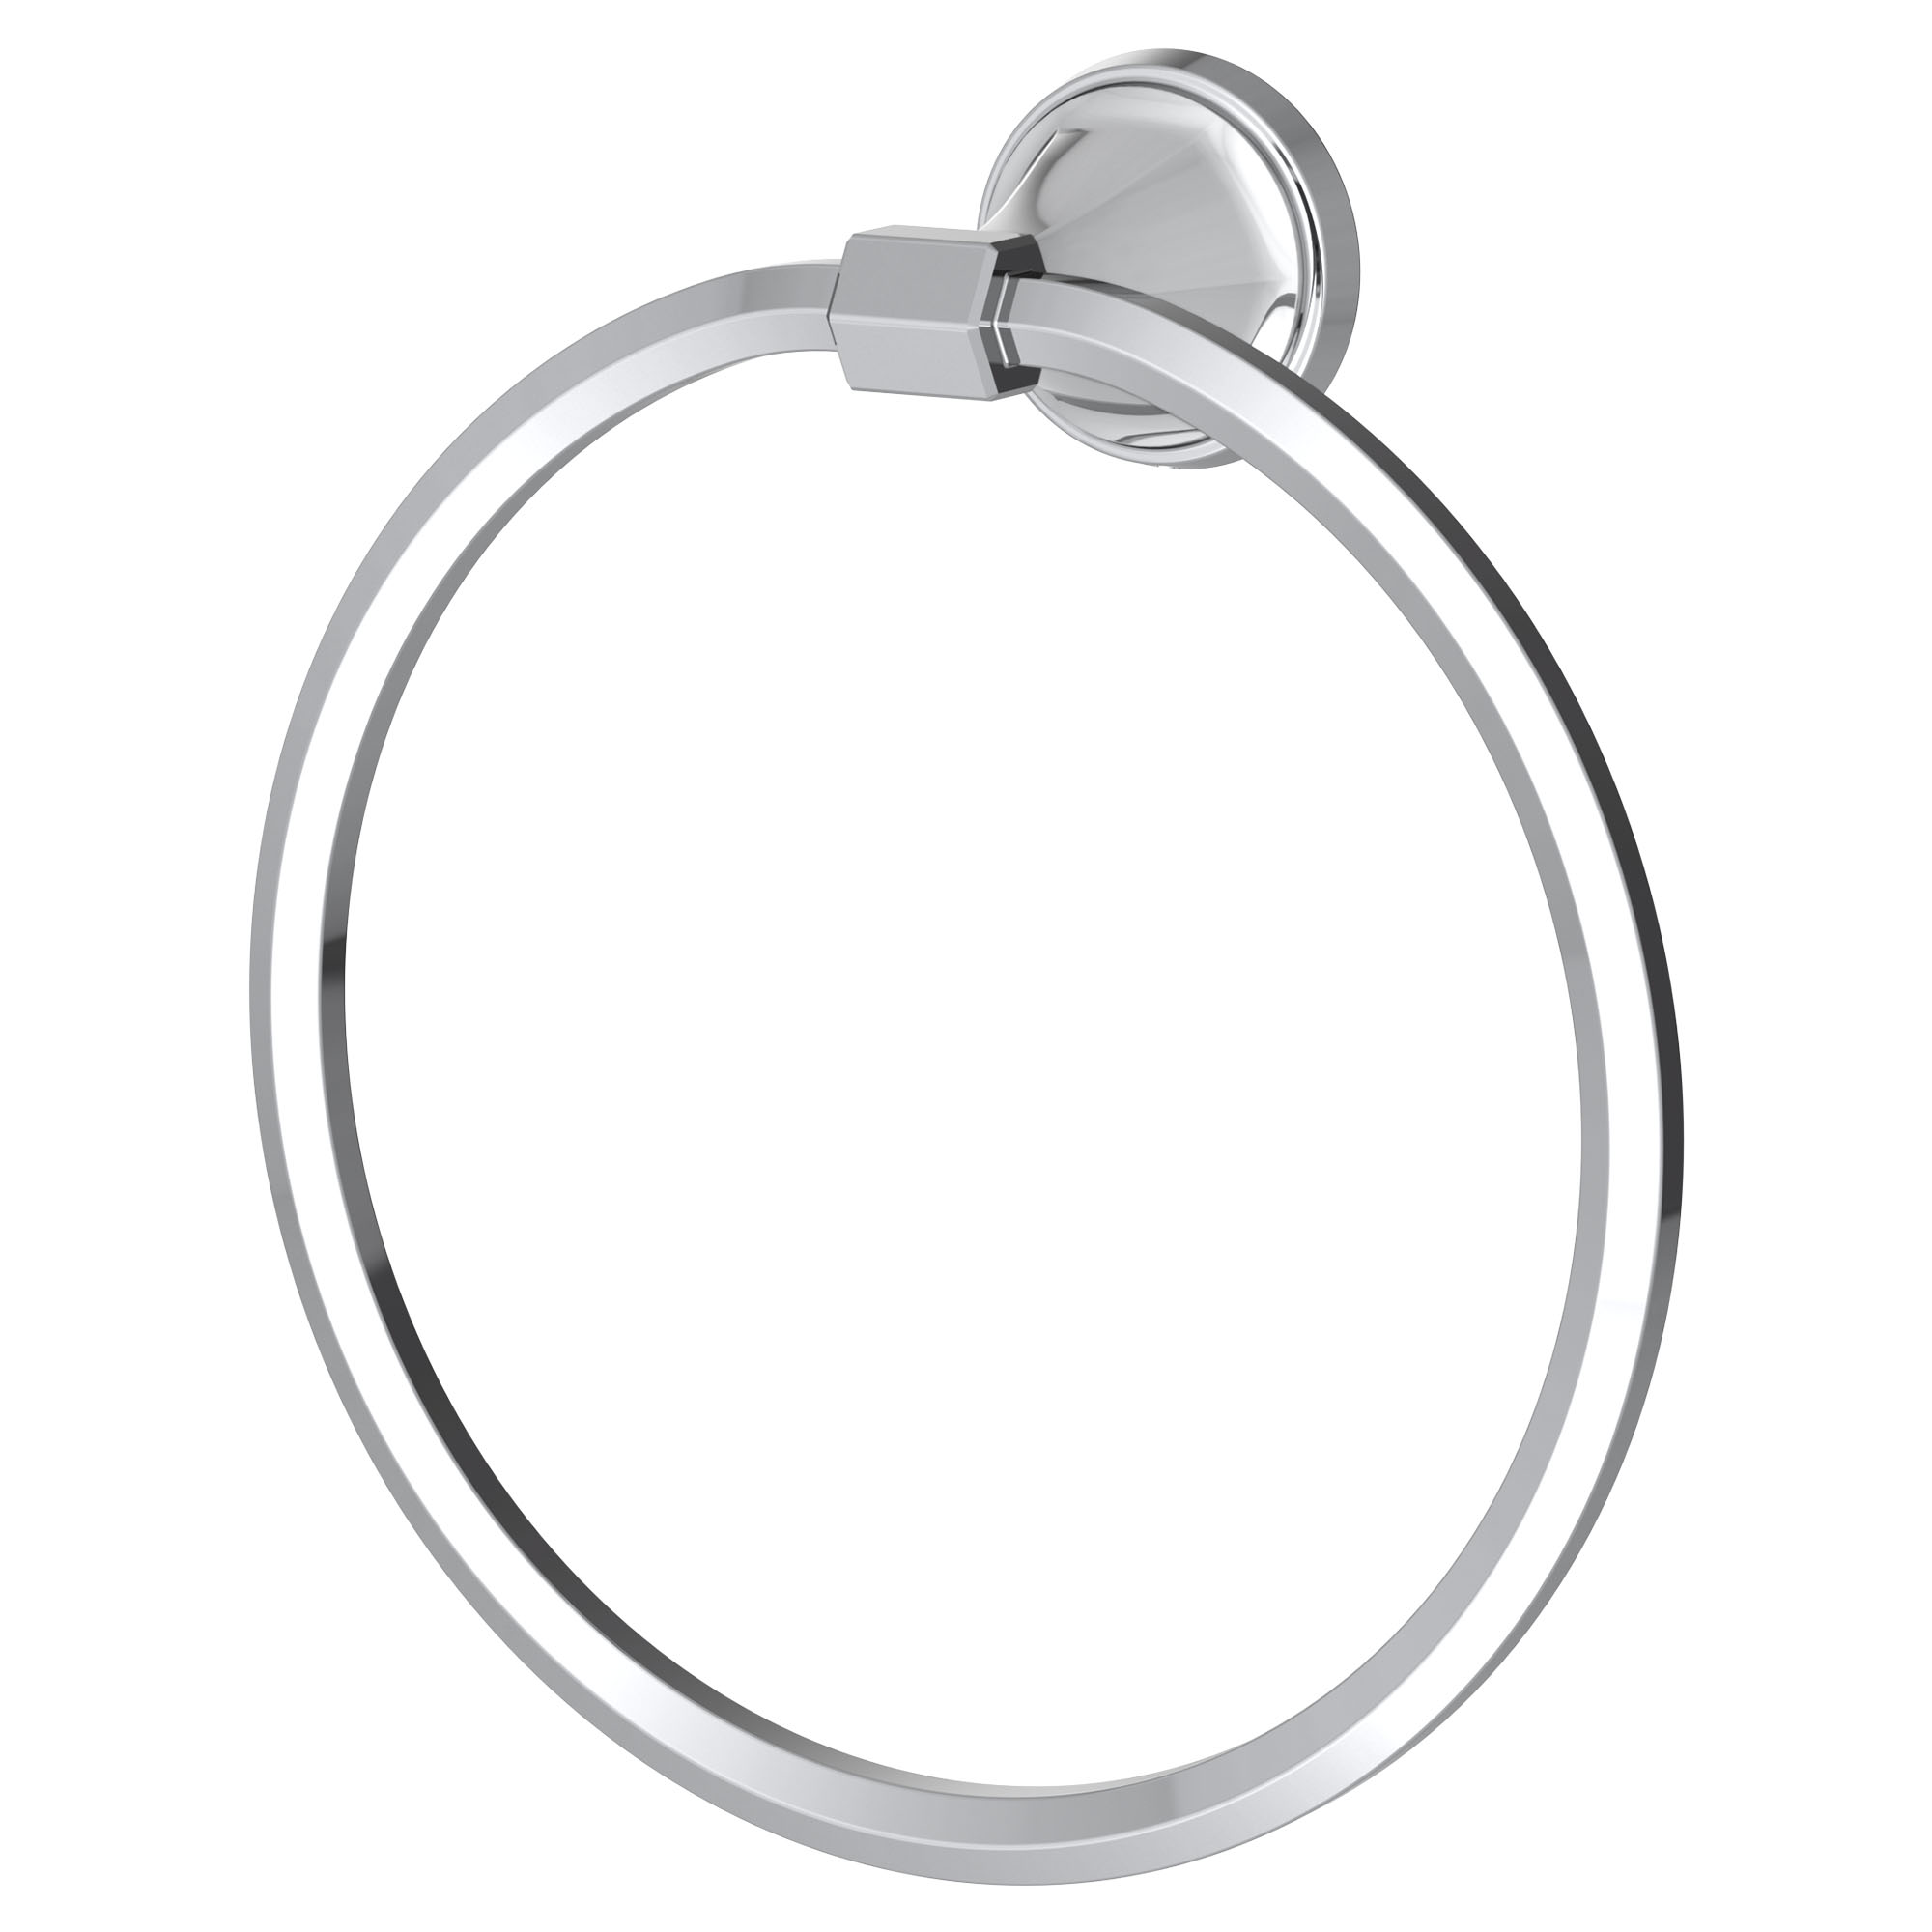 Fitzgerald Towel Ring